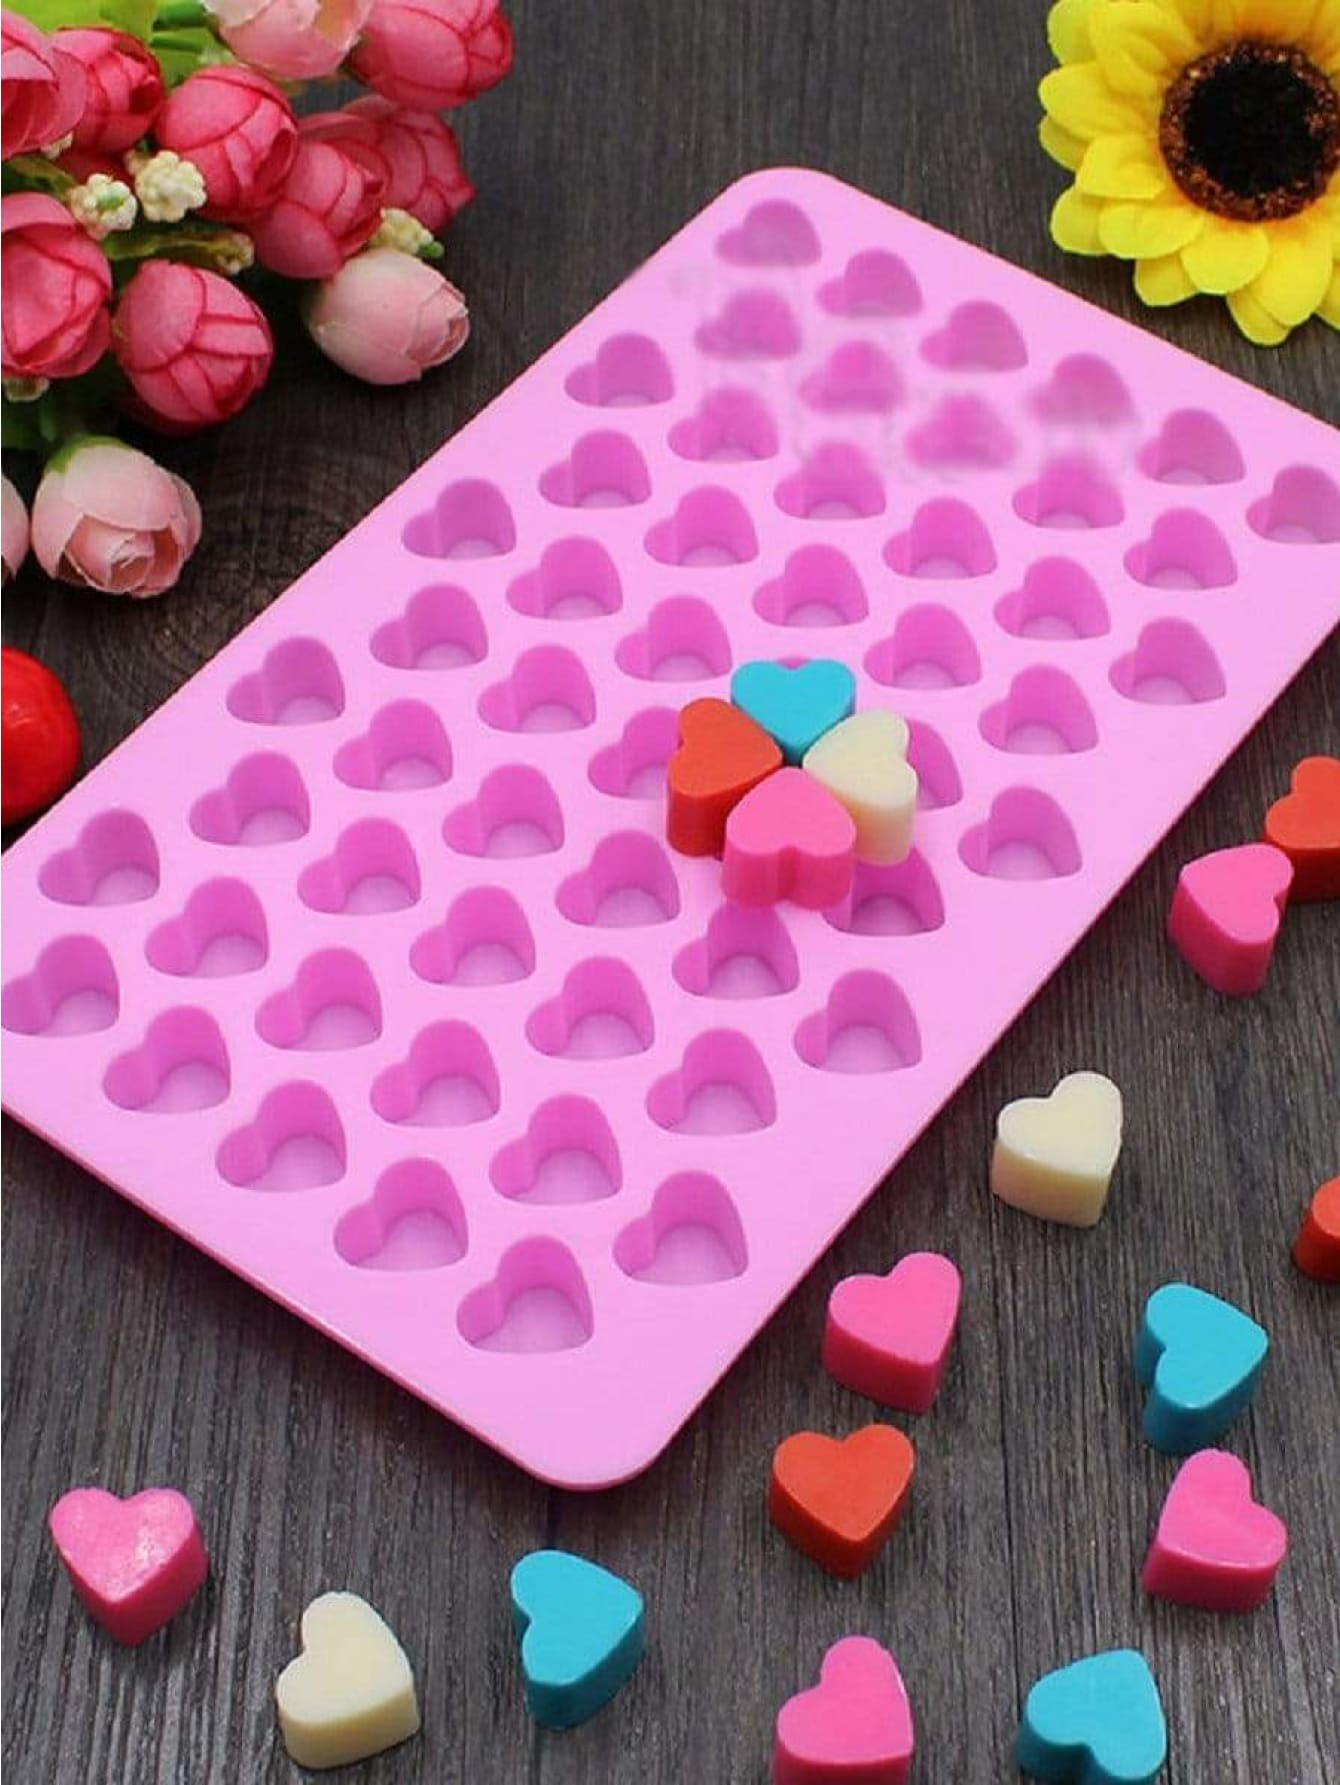 Multi Compartment Heart Baking Mold 1pc